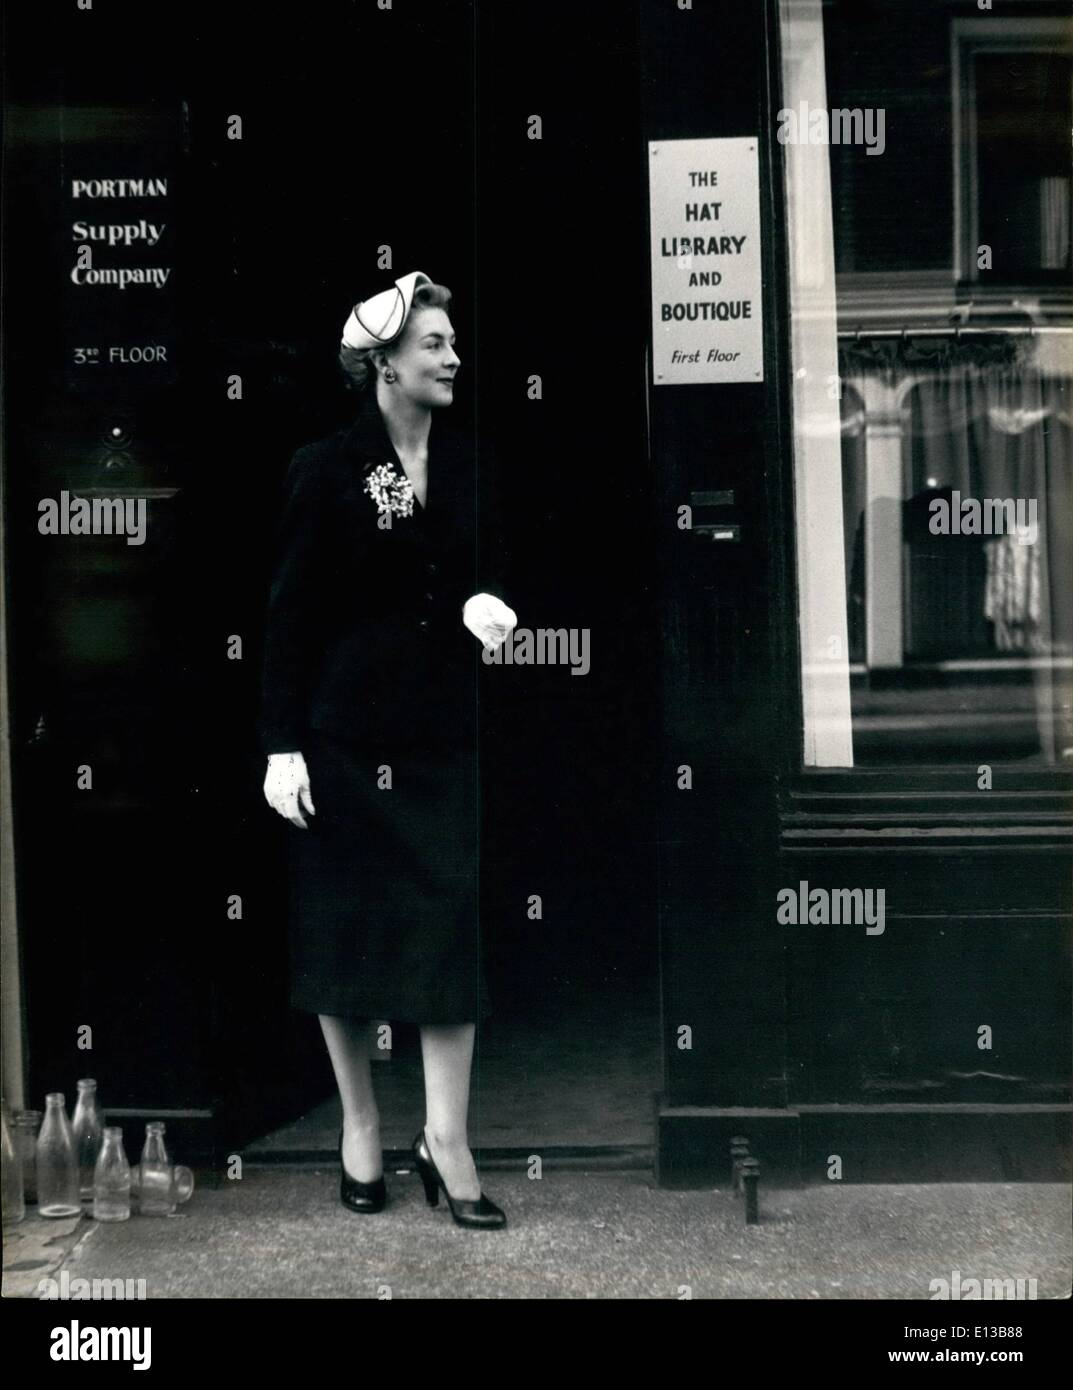 Feb. 29, 2012 - Hats Unlimited: A Millinery Model Service For Madame: Miss Gloria Reed leaves the Hat library wearing the hat she has selected for her outing. It is an exact, hand-made replica of that worn by Her Majesty on her return to London. - Stock Image